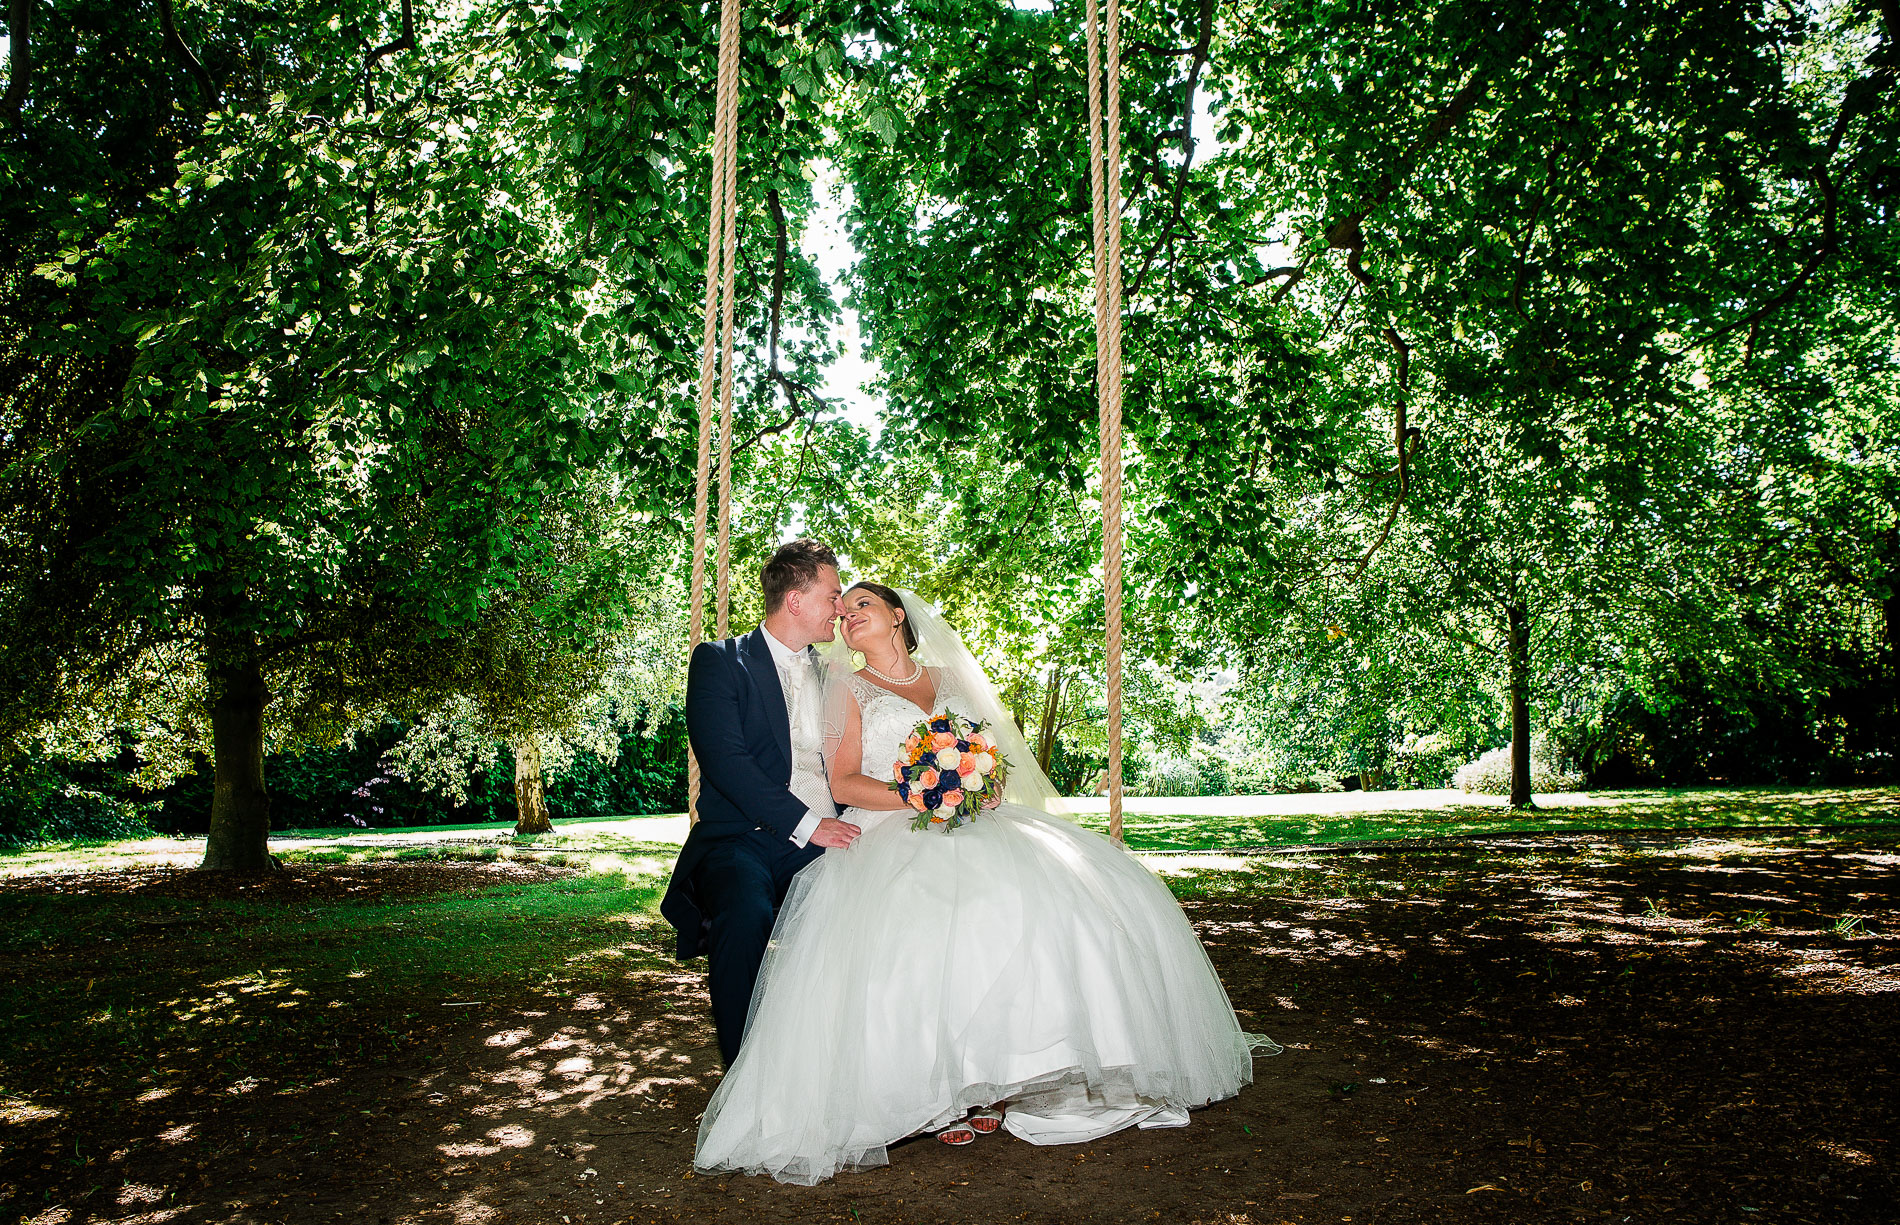 Chris at Chris Smith Photography is one of Ringwood Hall's most experienced recommended photographers – after photographing over 60 weddings at Ringwood Hall, Chris can create stunning images, whatever the weather, at any time of year.